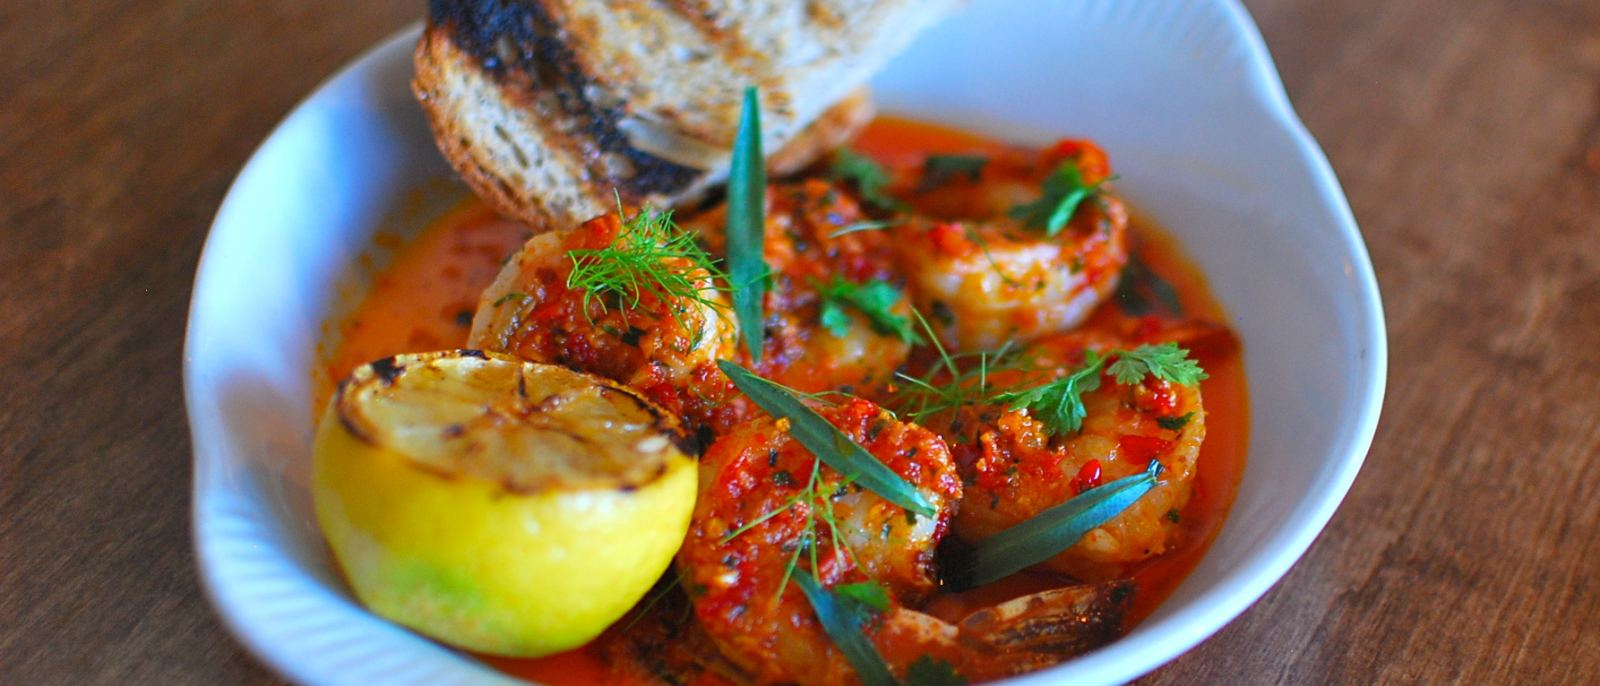 Rustic Canyon California Prawns Scampi